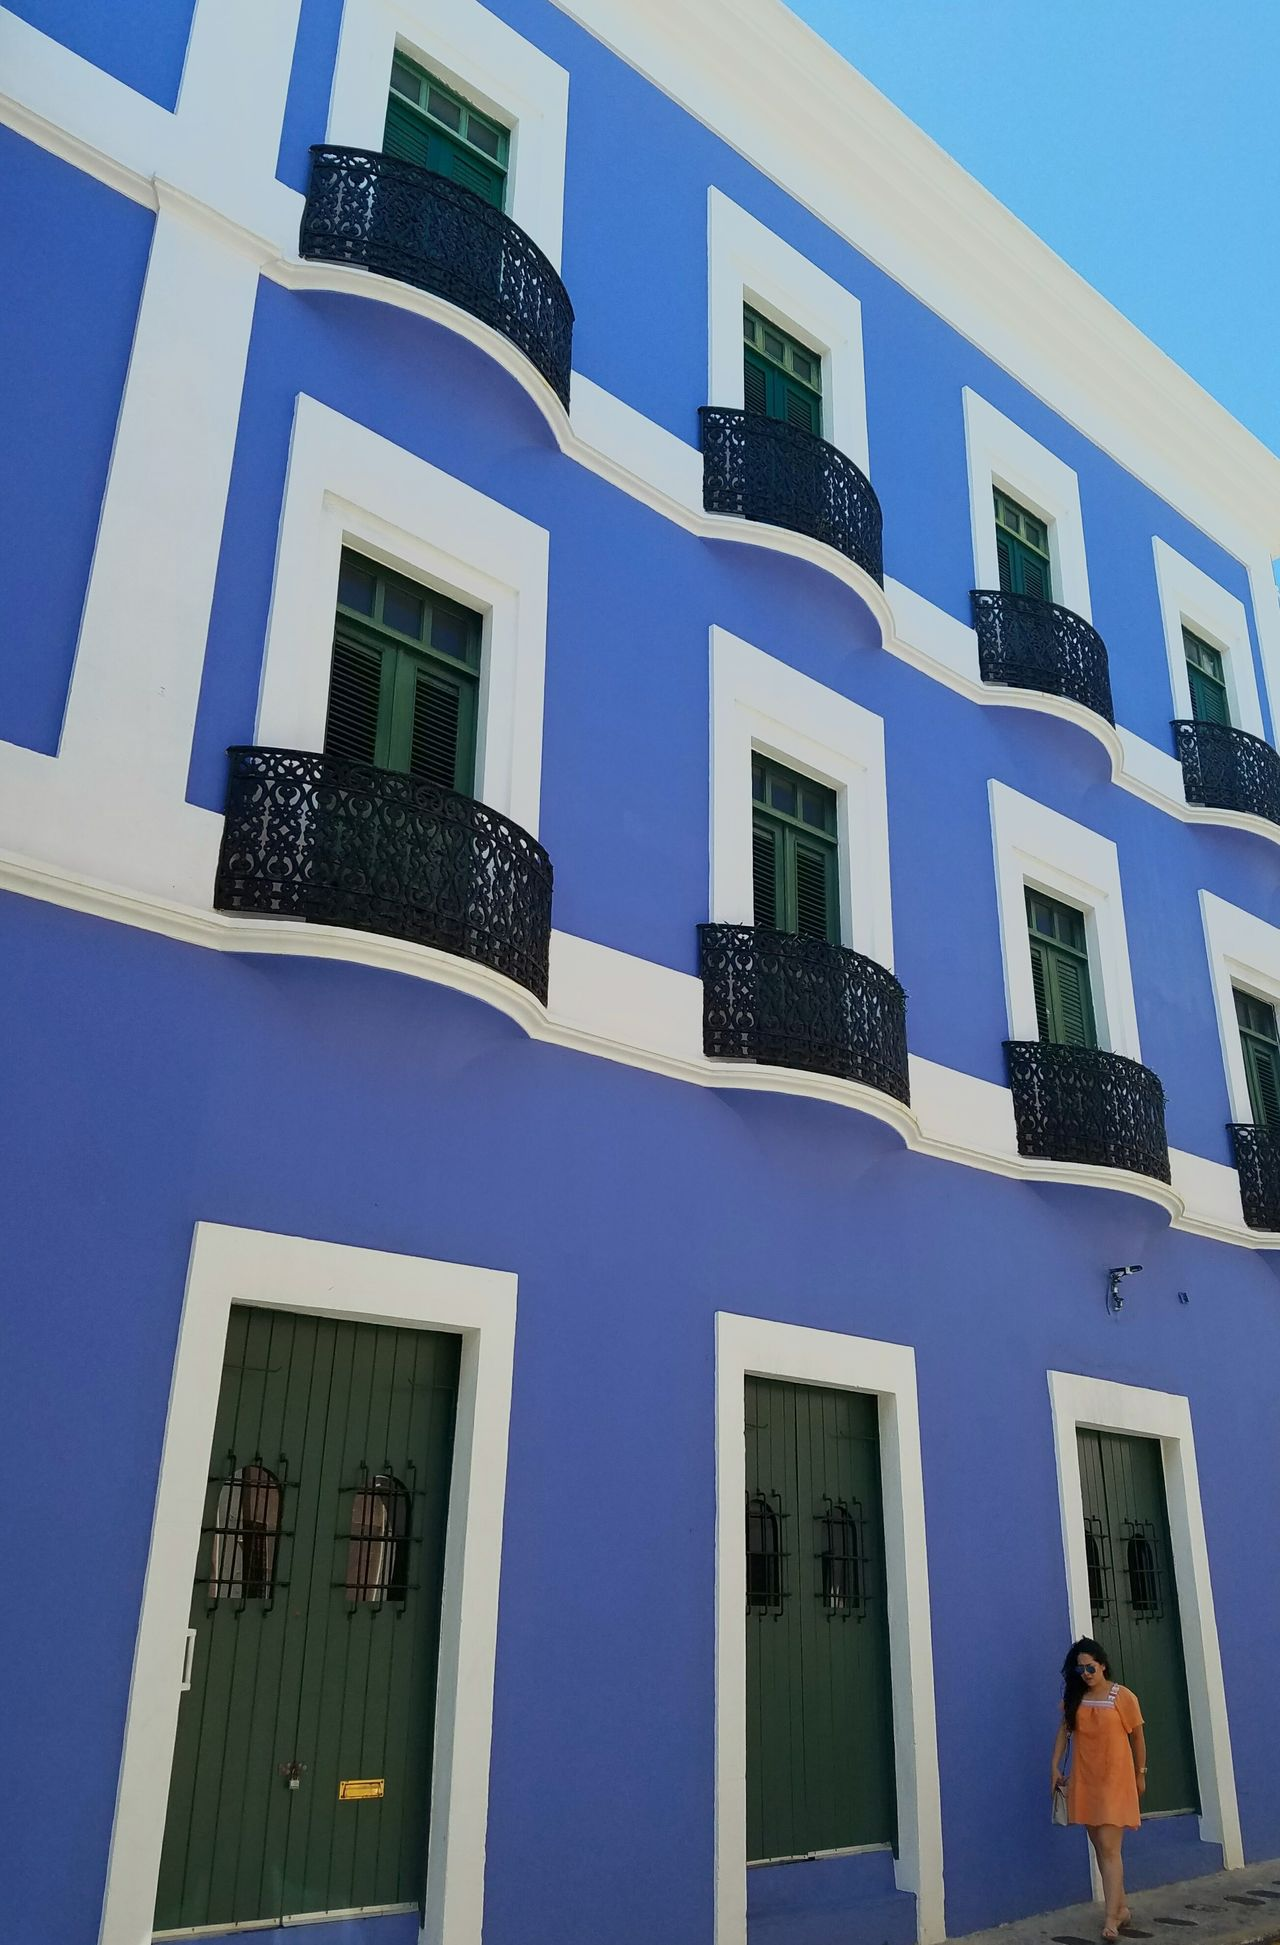 Color Block Minimalism Popular Simple Elegance Perspective Architecture The Architect - 2017 EyeEm Awards Minimalist Architecture The Street Photographer - 2017 EyeEm Awards Urban Landscape Light And Shadow Lines And Angles San Juan PR Colors Of My City Architectural Detail Built Structure City Landscape Urban Exploration Blue BYOPaper!